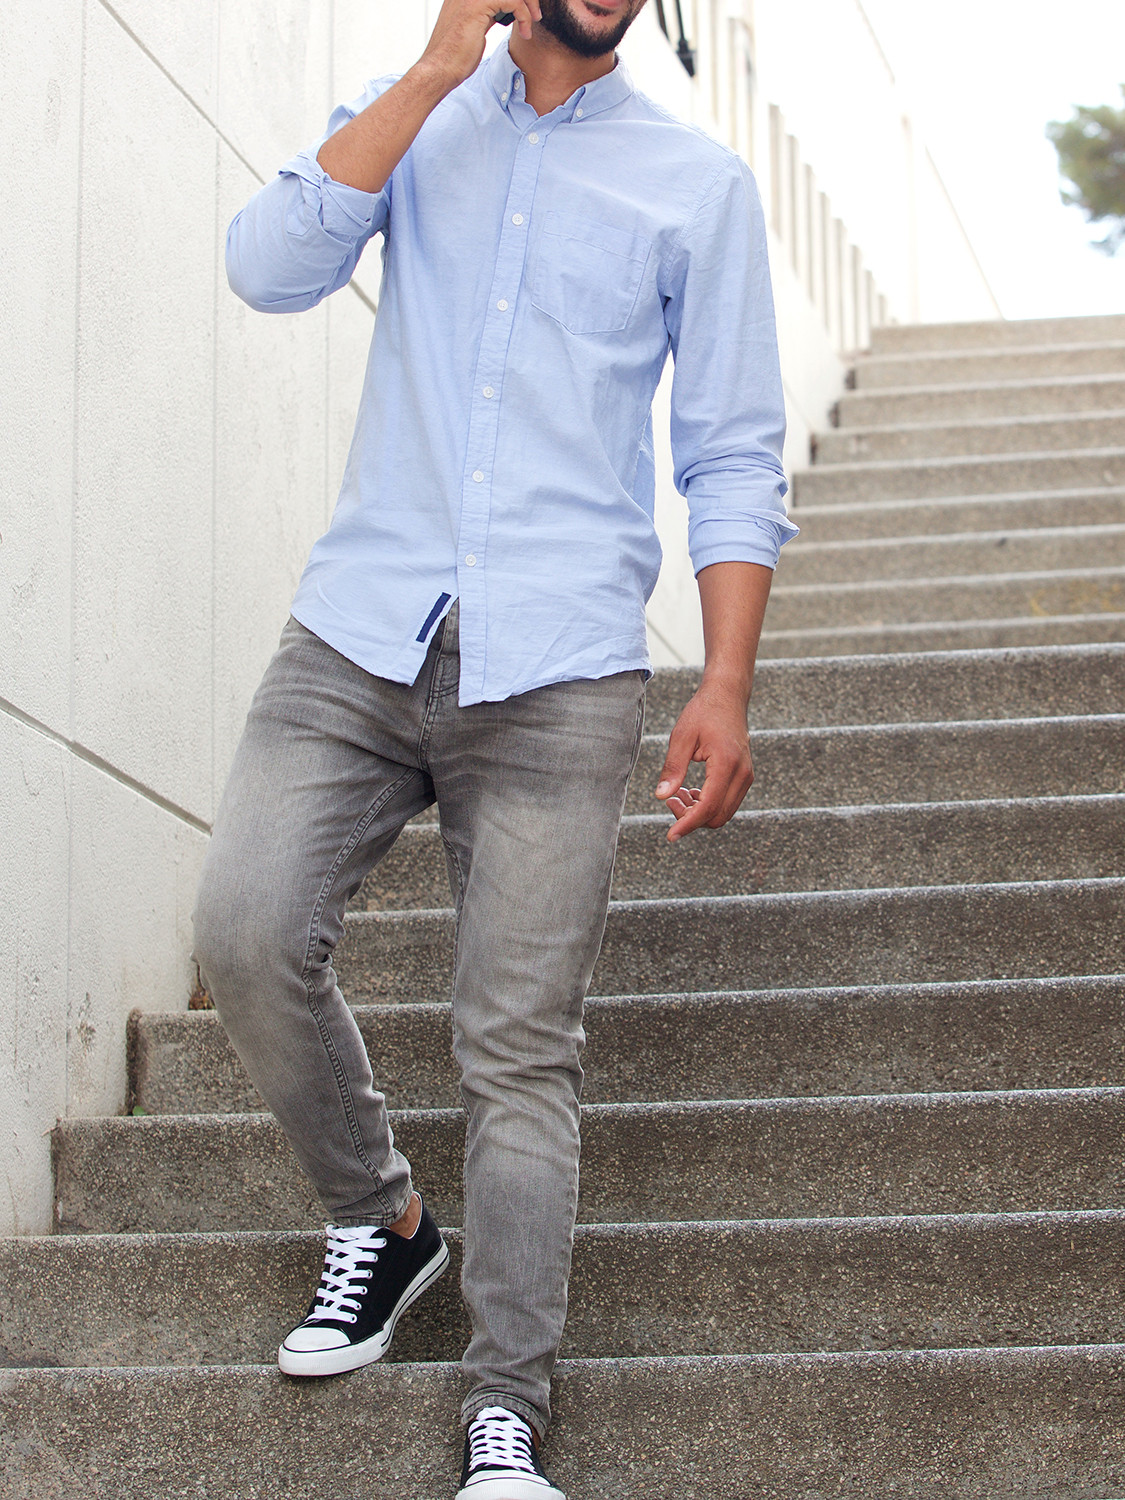 Men's outfit idea for 2021 with blue casual shirt, gray jeans, brown casual belt, black sneakers. Suitable for spring and fall.